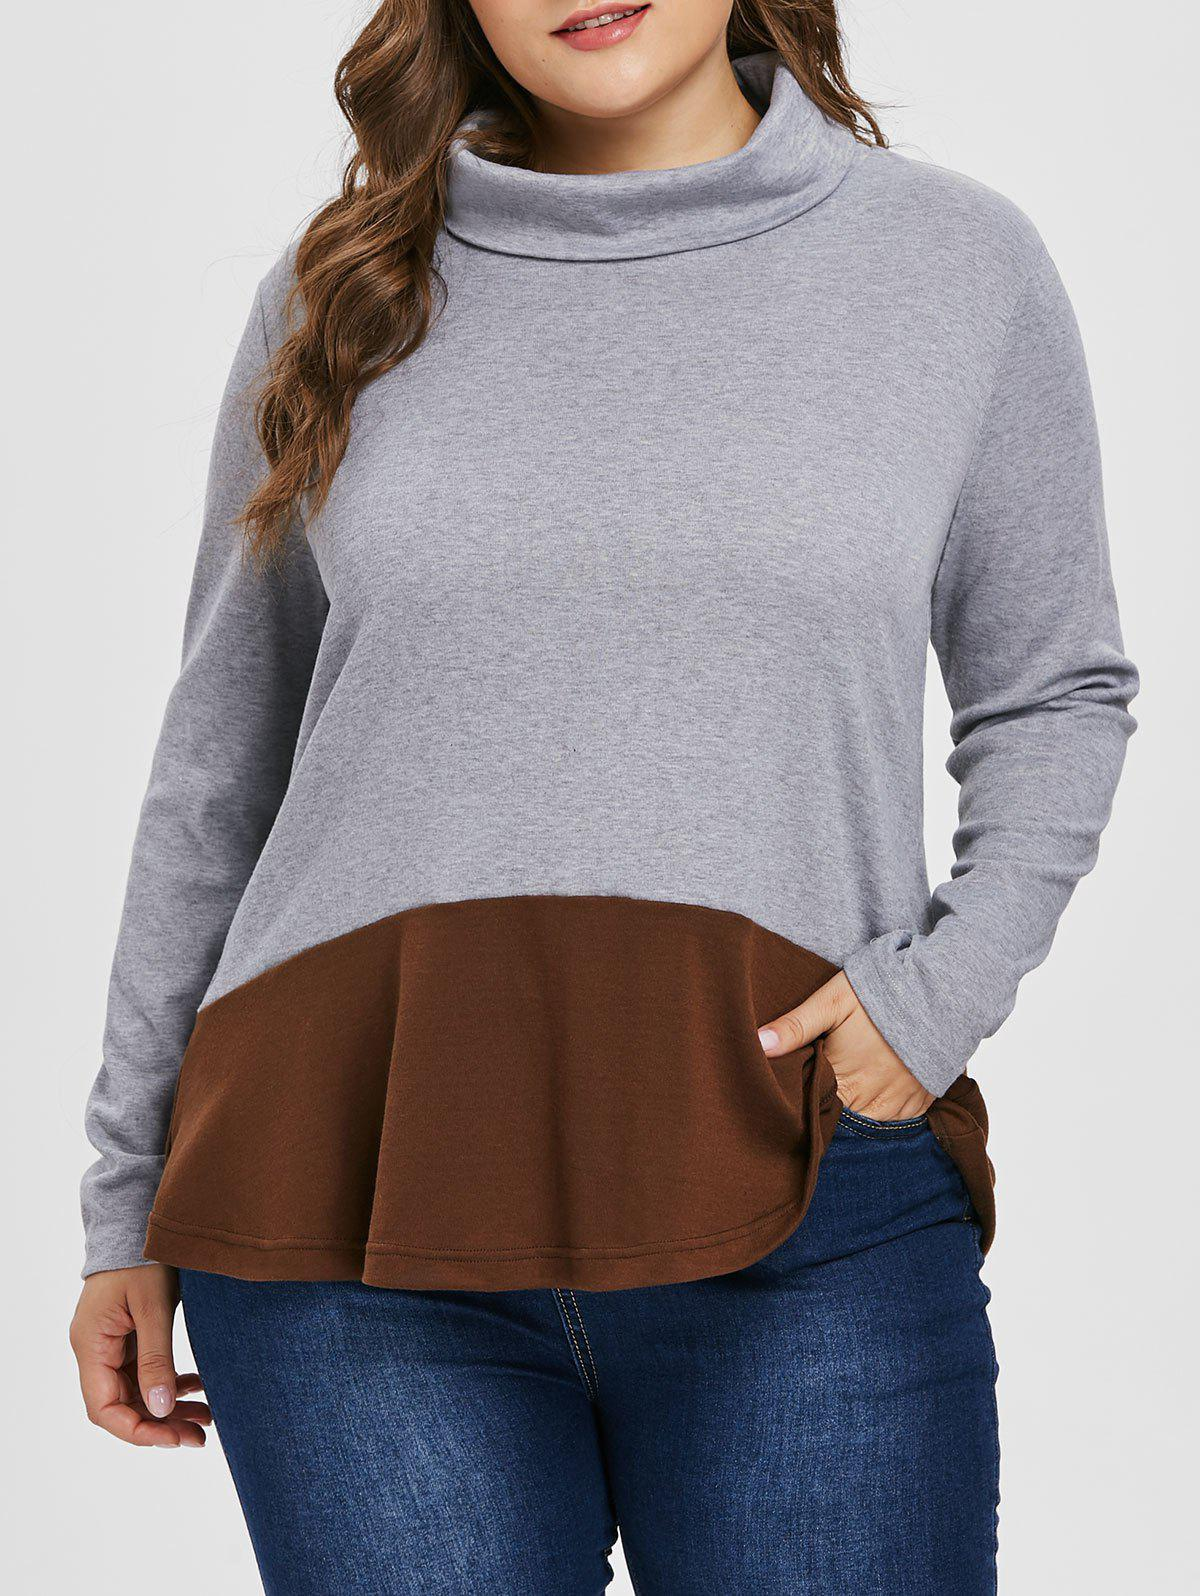 Sweat-shirt Tunique de Grande Taille en Blocs de Couleurs Gris 4X